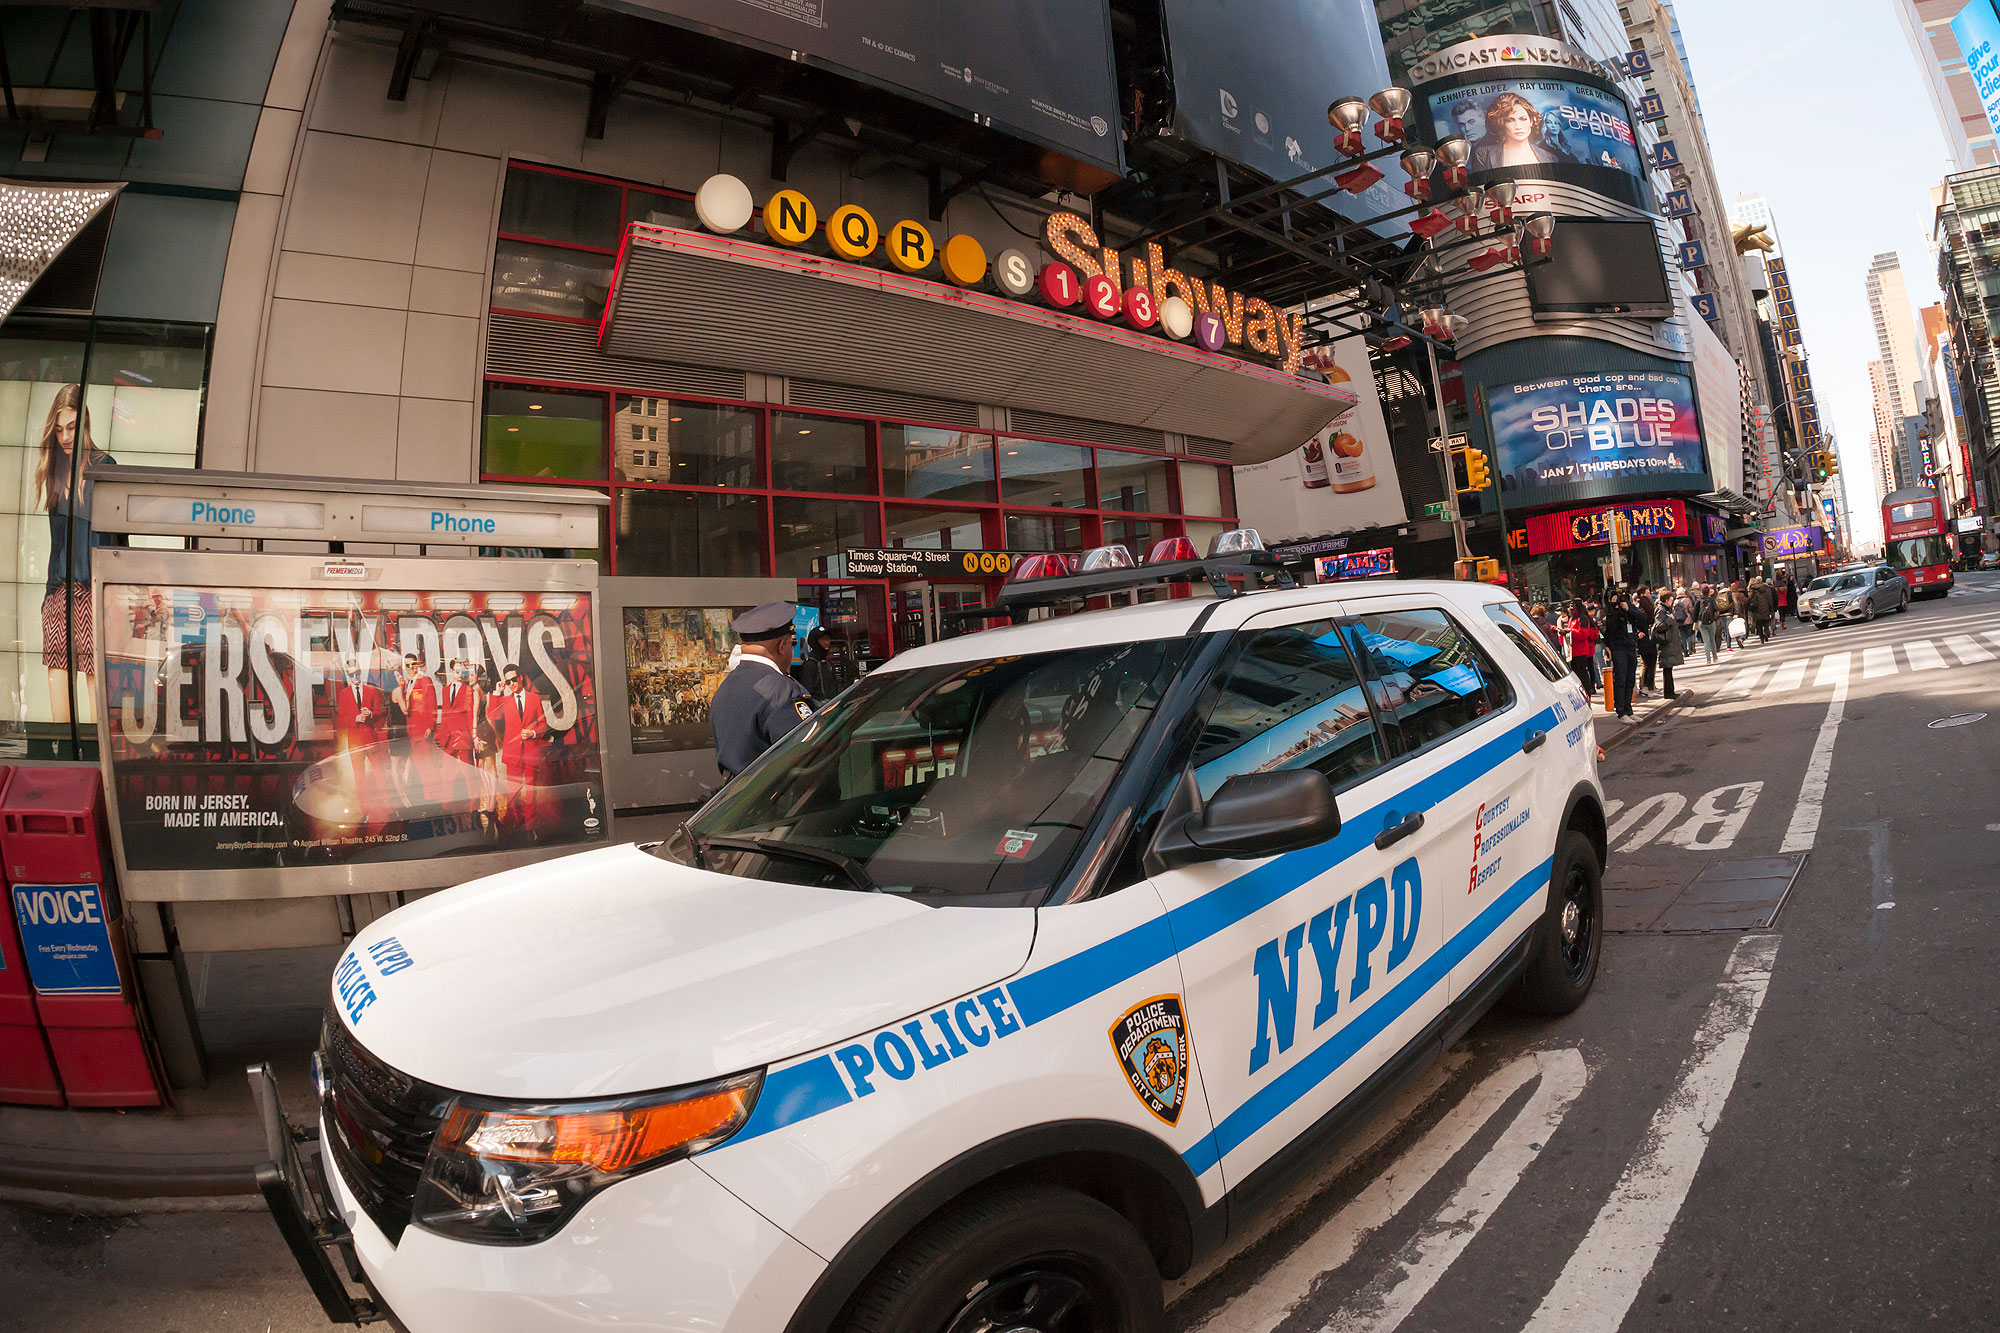 Security heightened in New York in wake of Brussels terrorism